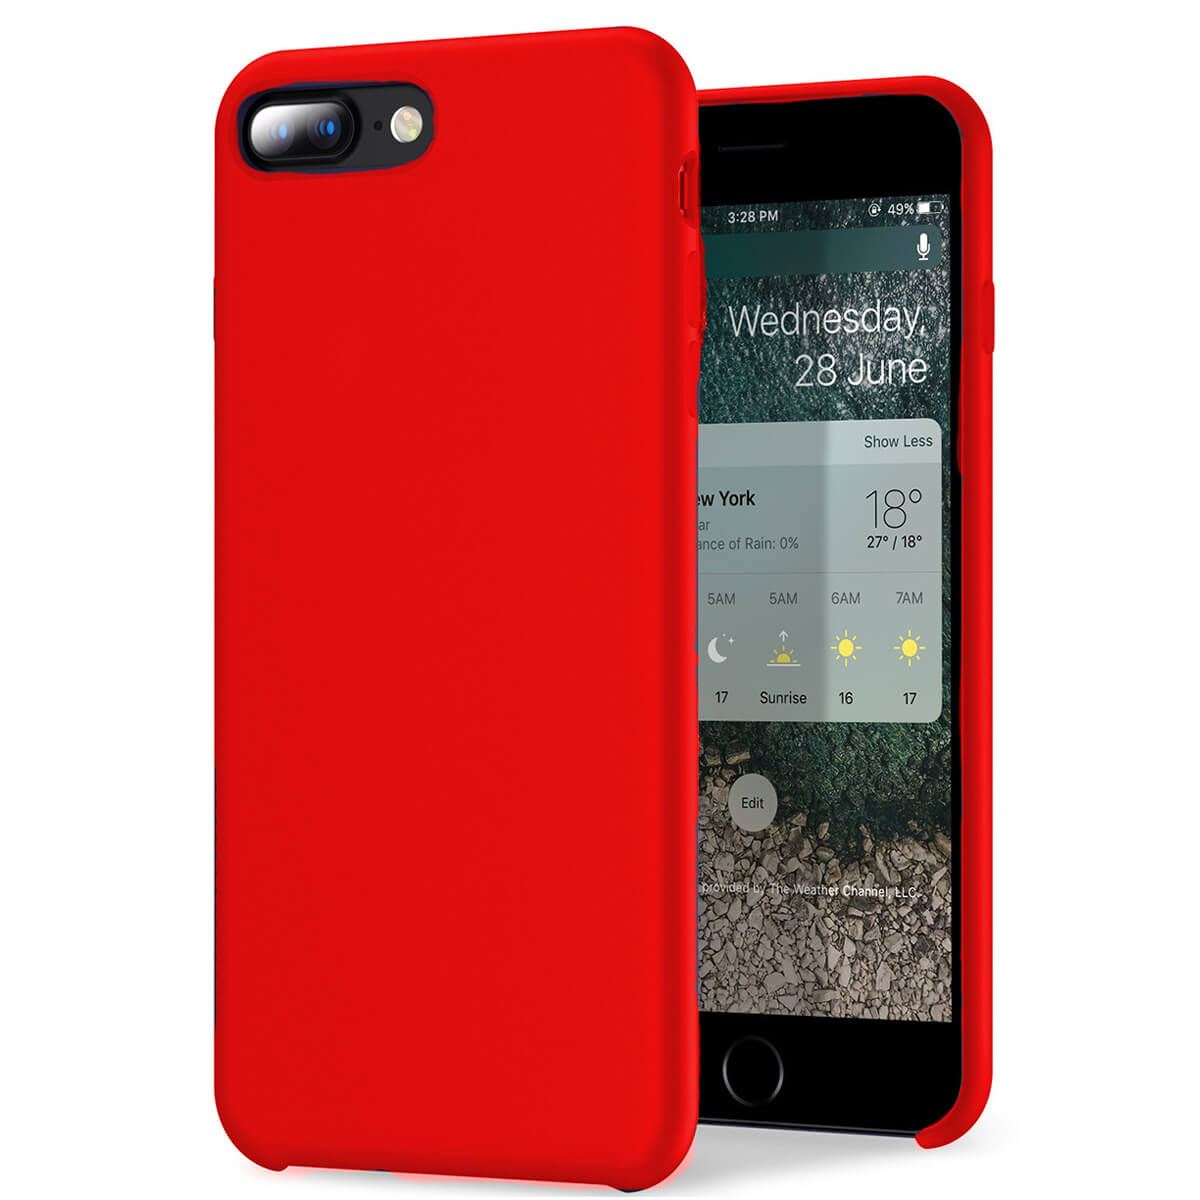 Liquid-Silicone-Phone-Case-For-Apple-iPhone-Soft-Shockproof-Matte-Back-Cover thumbnail 20